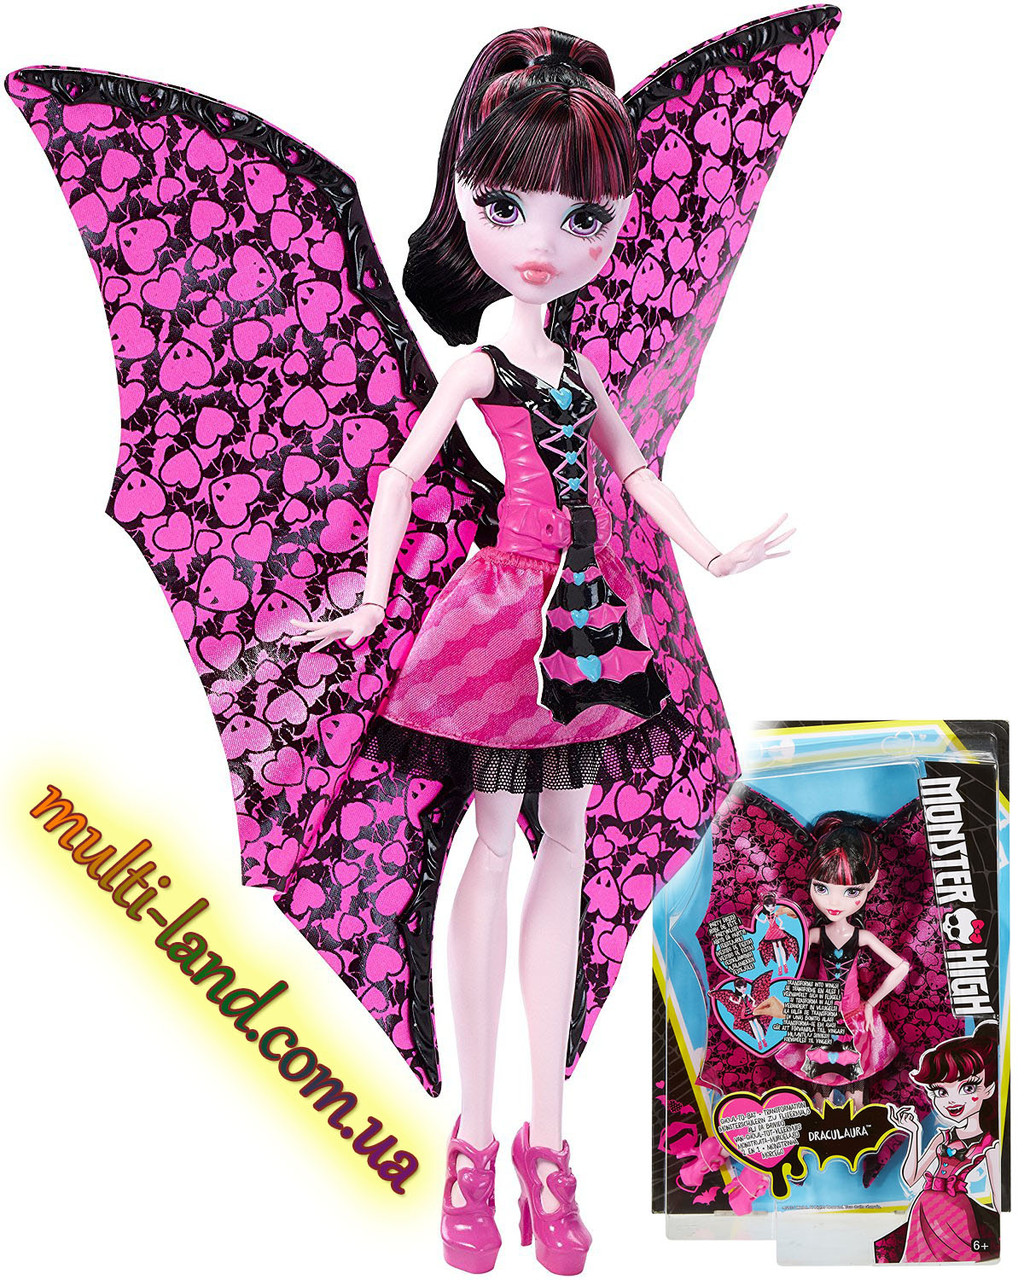 Дракулаура Кукла Монстер Хай  Летучая Мышь Monster High  Transformation Draculaura